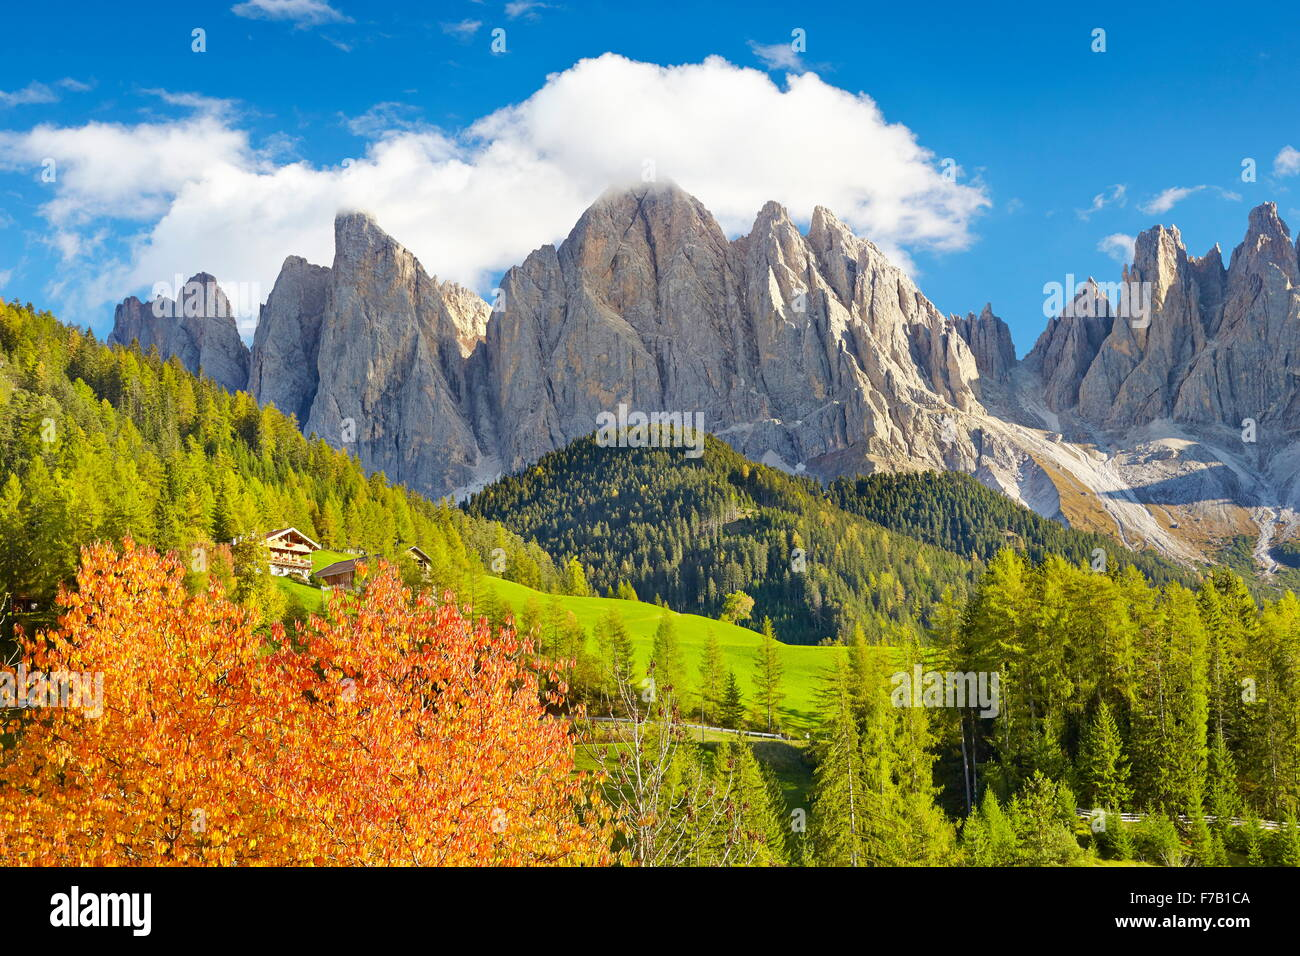 Landscapes in Dolomites Mountains in autumn, Tyrol province, Alps, Italy - Stock Image